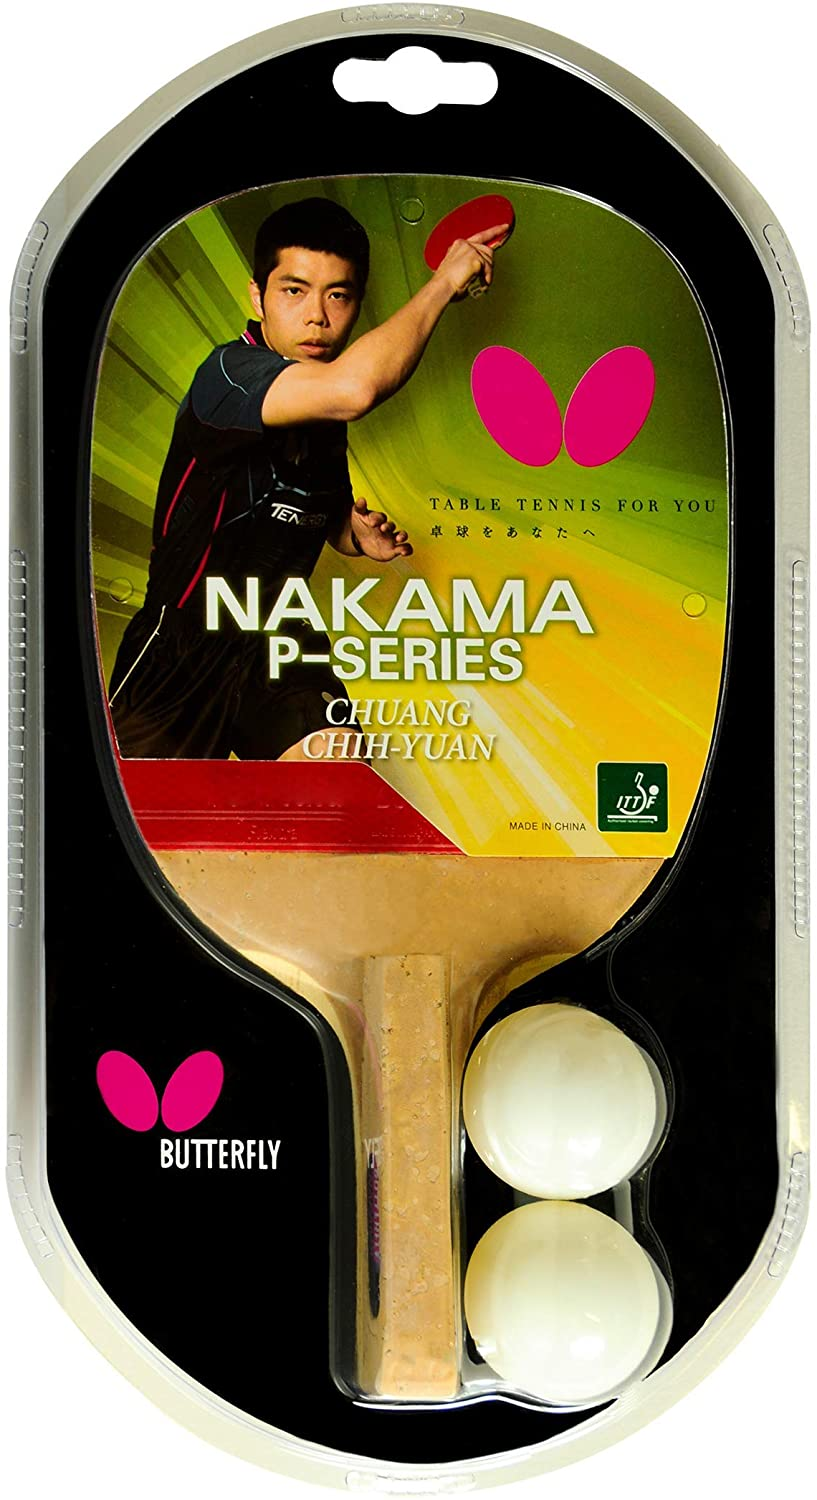 Butterfly Nakama P5 Japanese Penhold Table Tennis Racket | Nakama Series | Outstanding Control with Reliable Speed and Spin | Recommended for Beginning Level Players